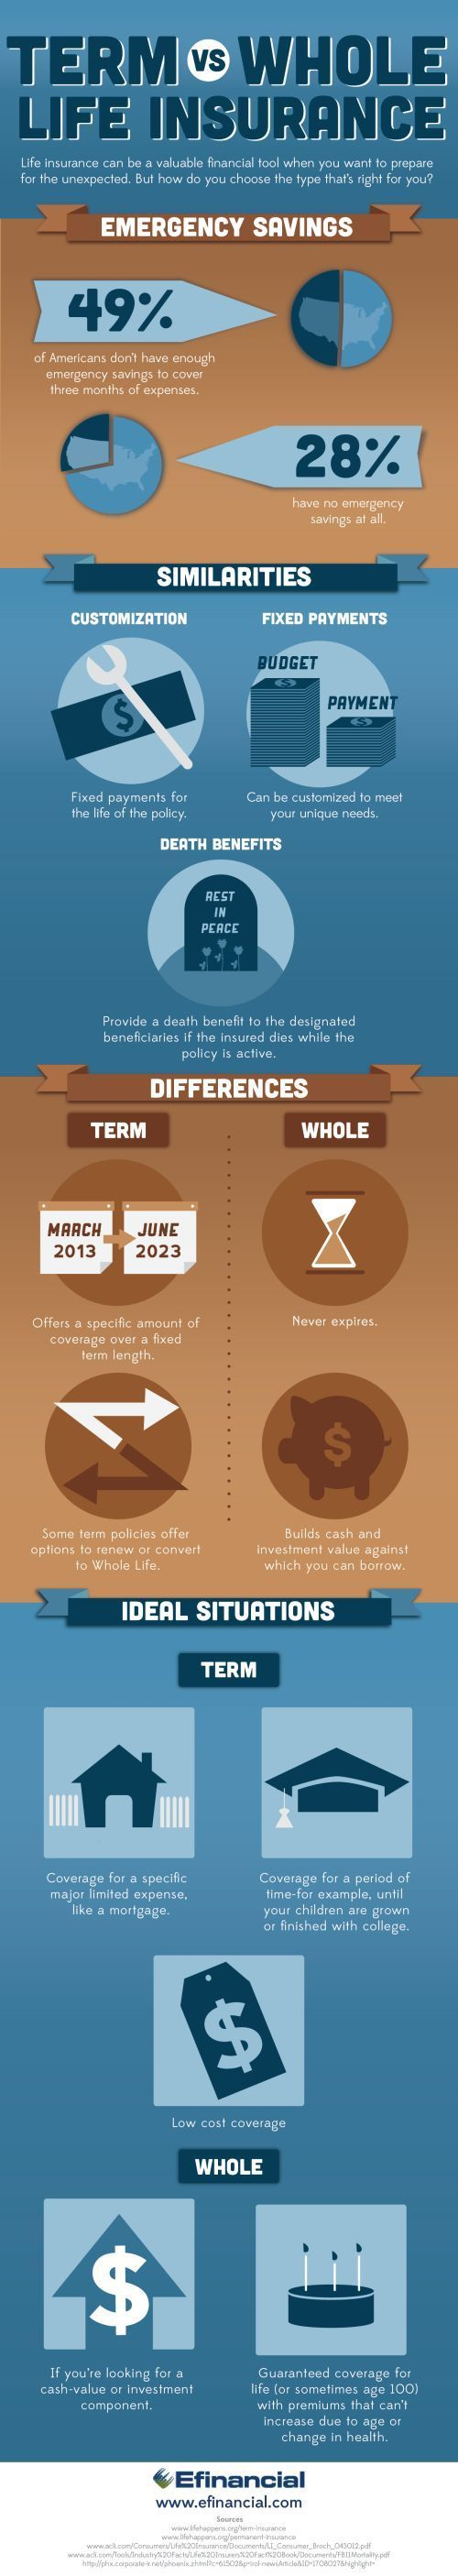 Term Vs Whole Life Insurance Life Insurance Infographic Efinancial Lifeinsurancefactstips Whole Life Insurance Life Insurance Facts Life Insurance Quotes